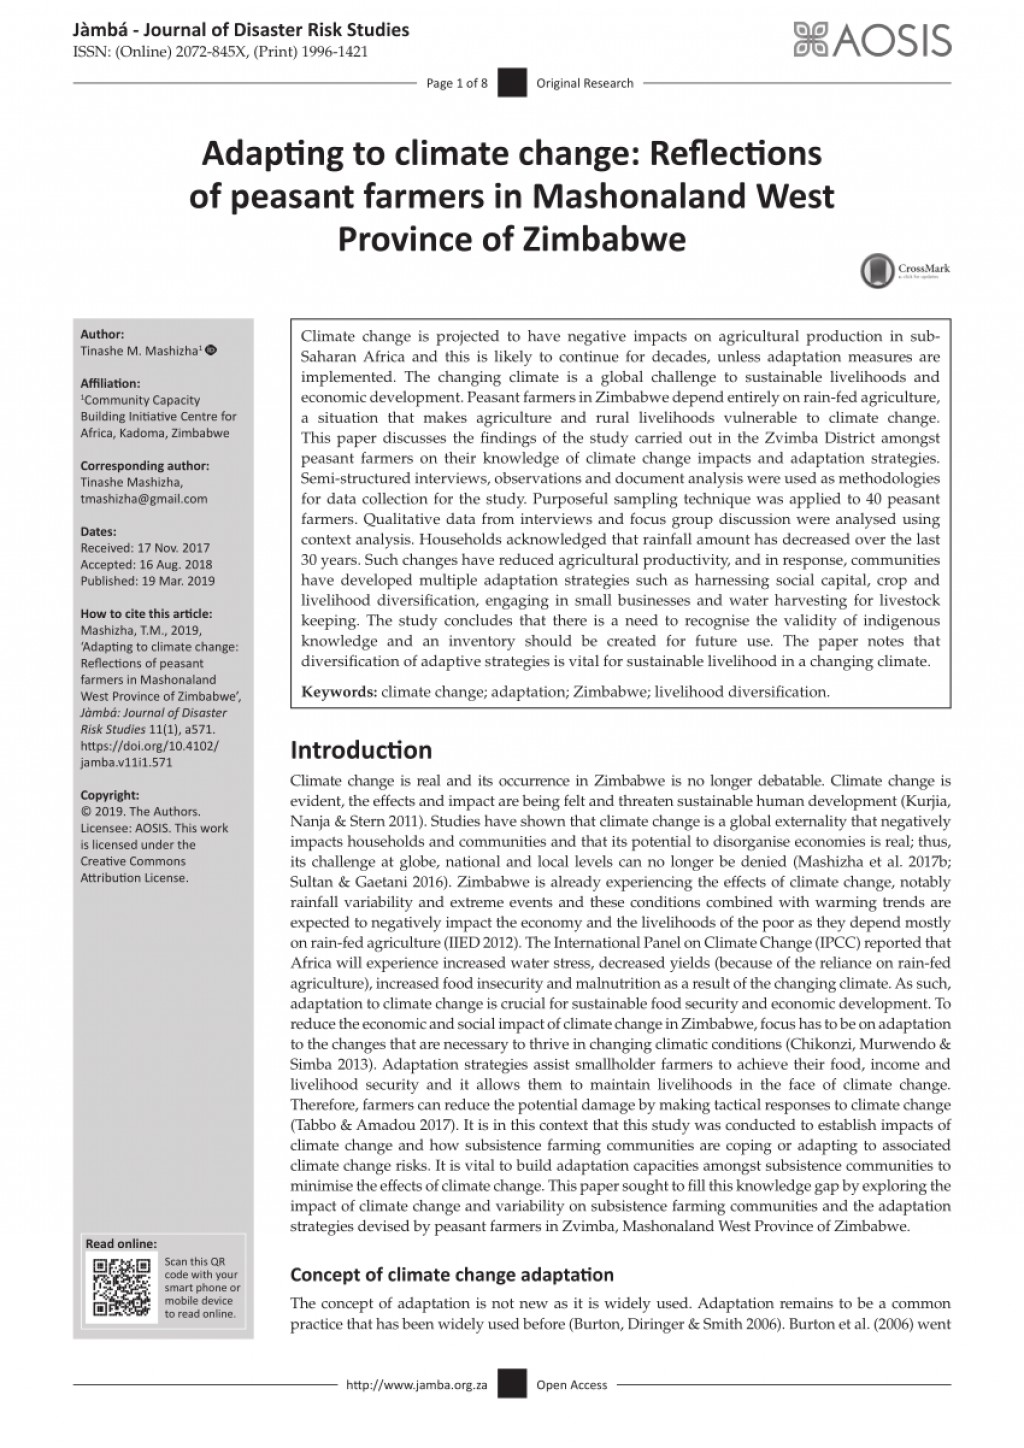 005 Research Paper Pdf Papers On Climate Change In Zimbabwe Imposing Large